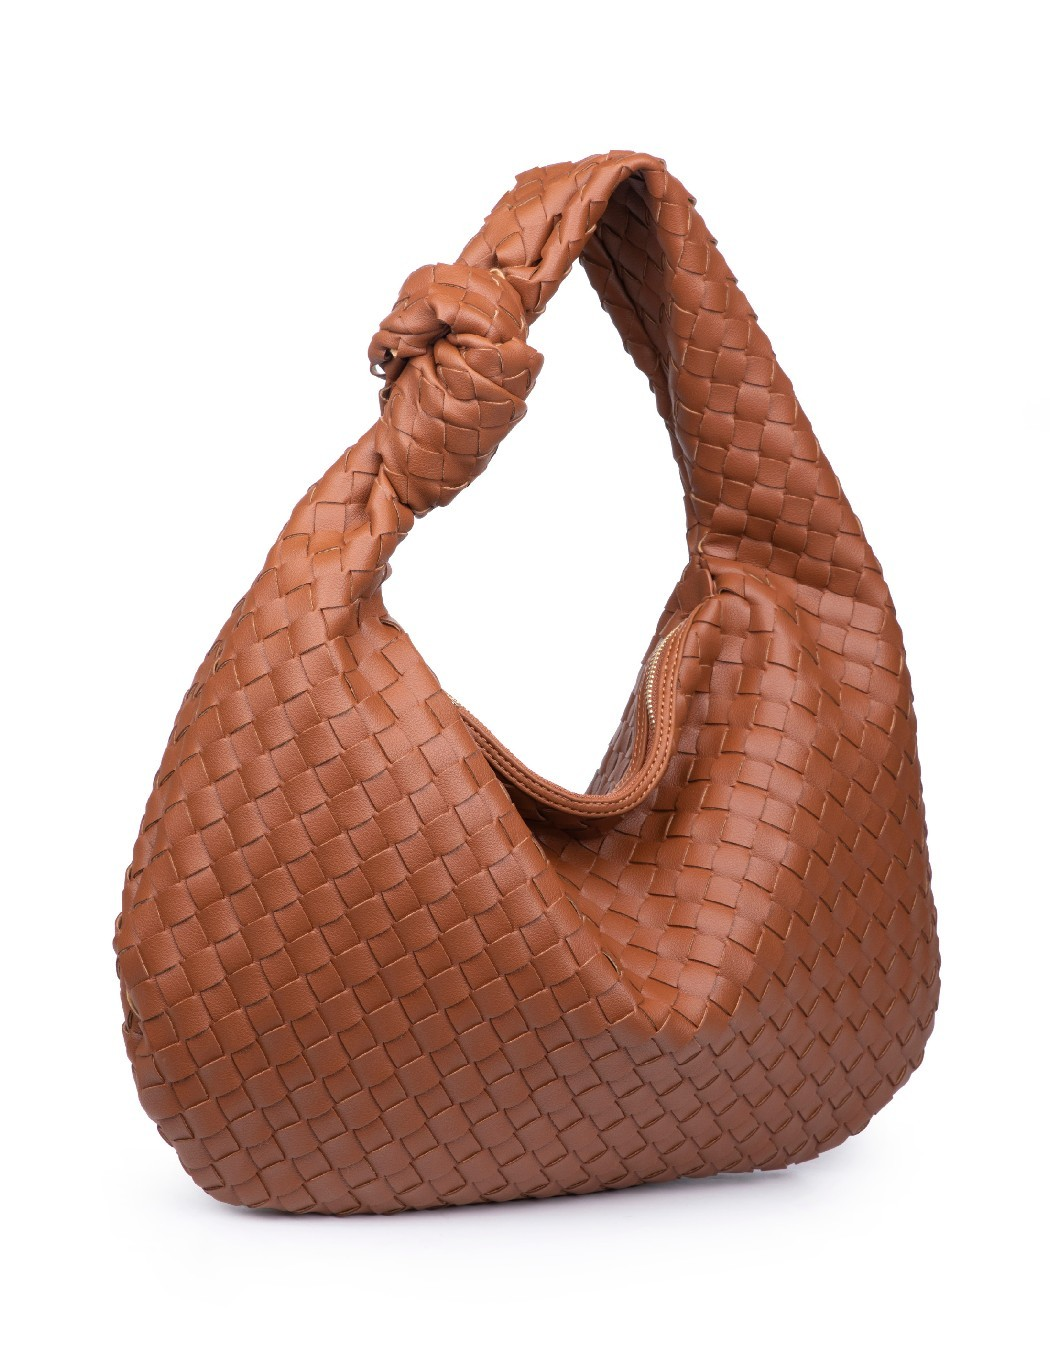 Woven Hobo Bag - Extended Length